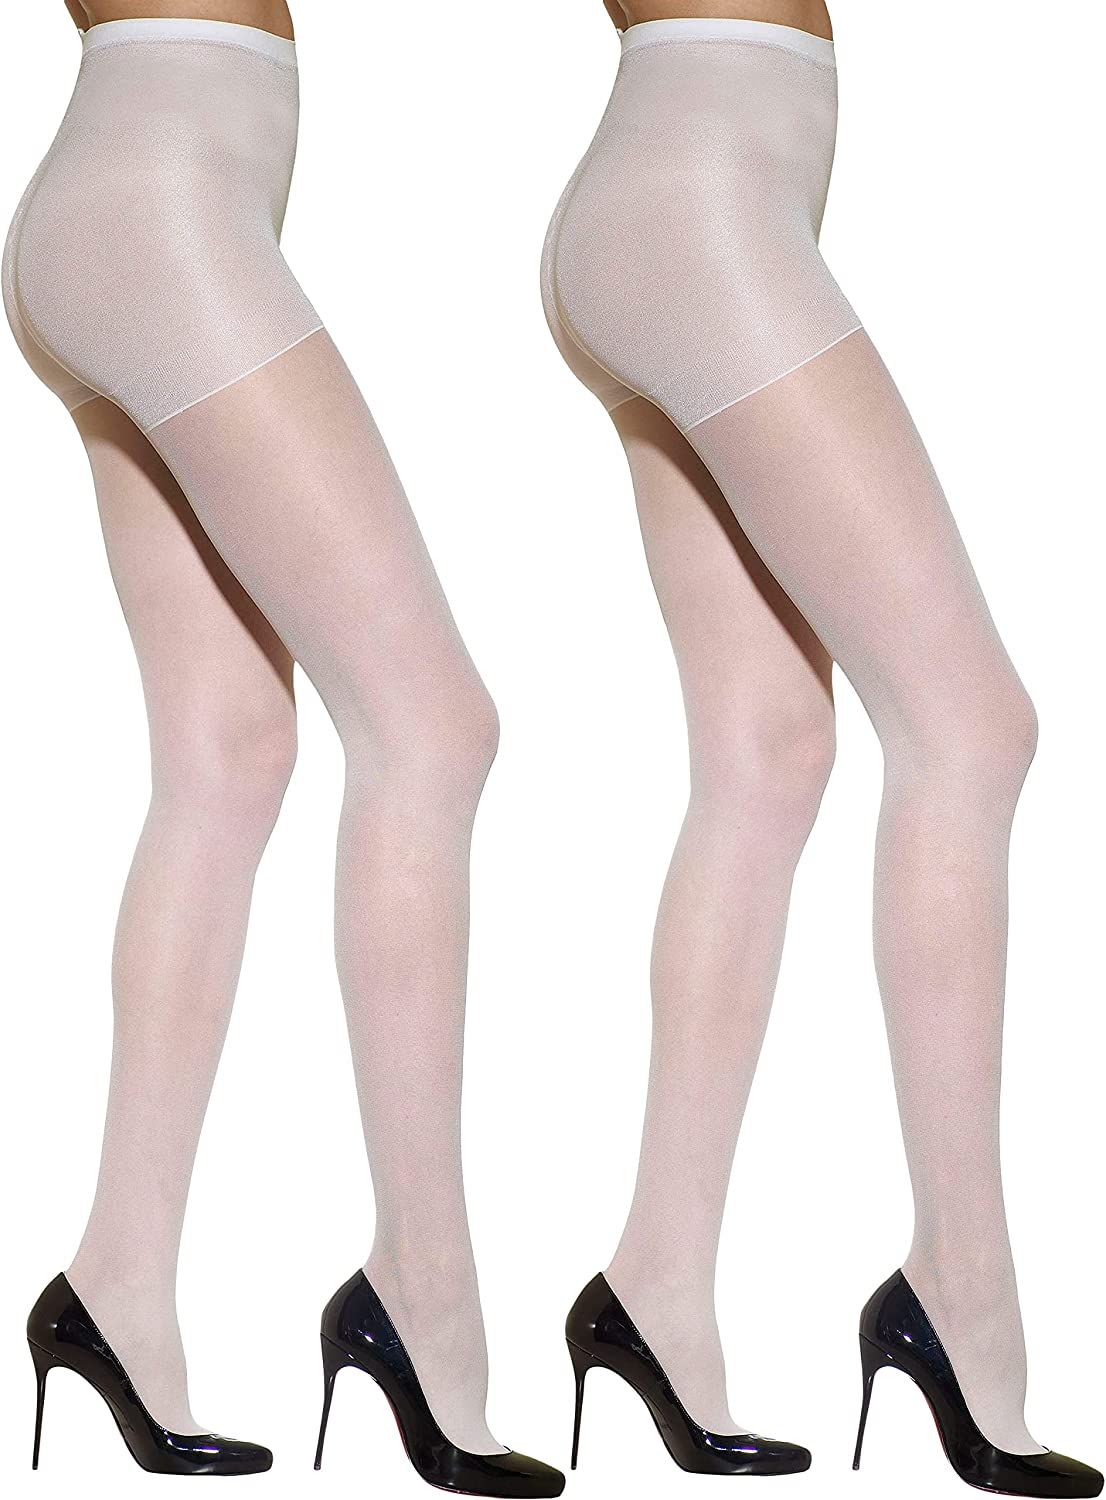 Silkies Women's Control Top Pantyhose with Light Support Legs (2 Pair Pack)